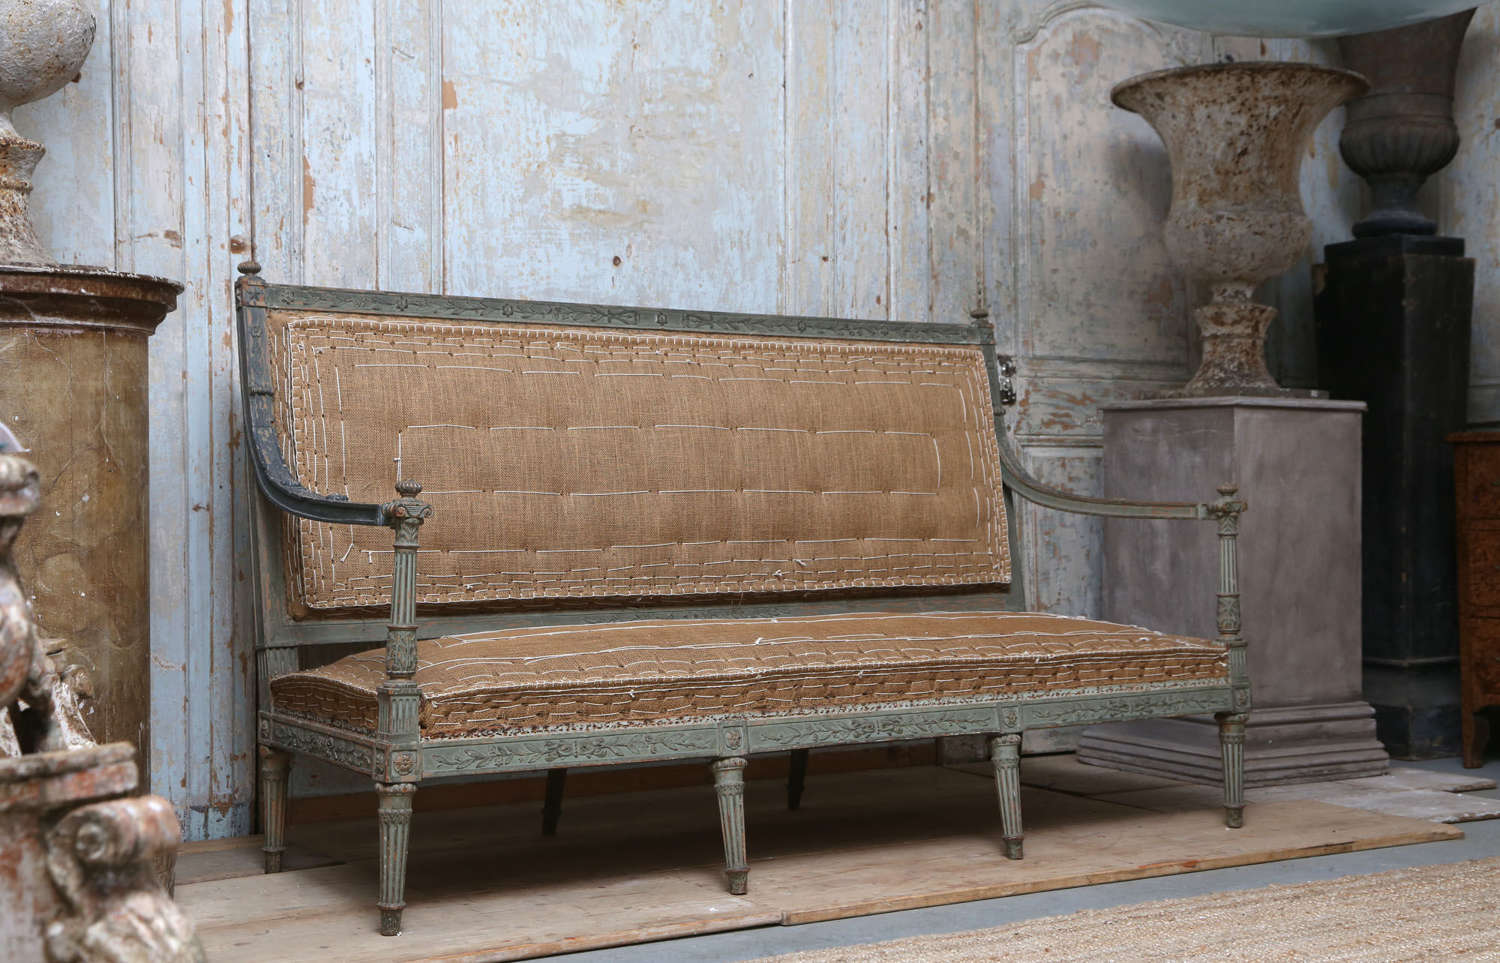 18th century French Directoire sofa